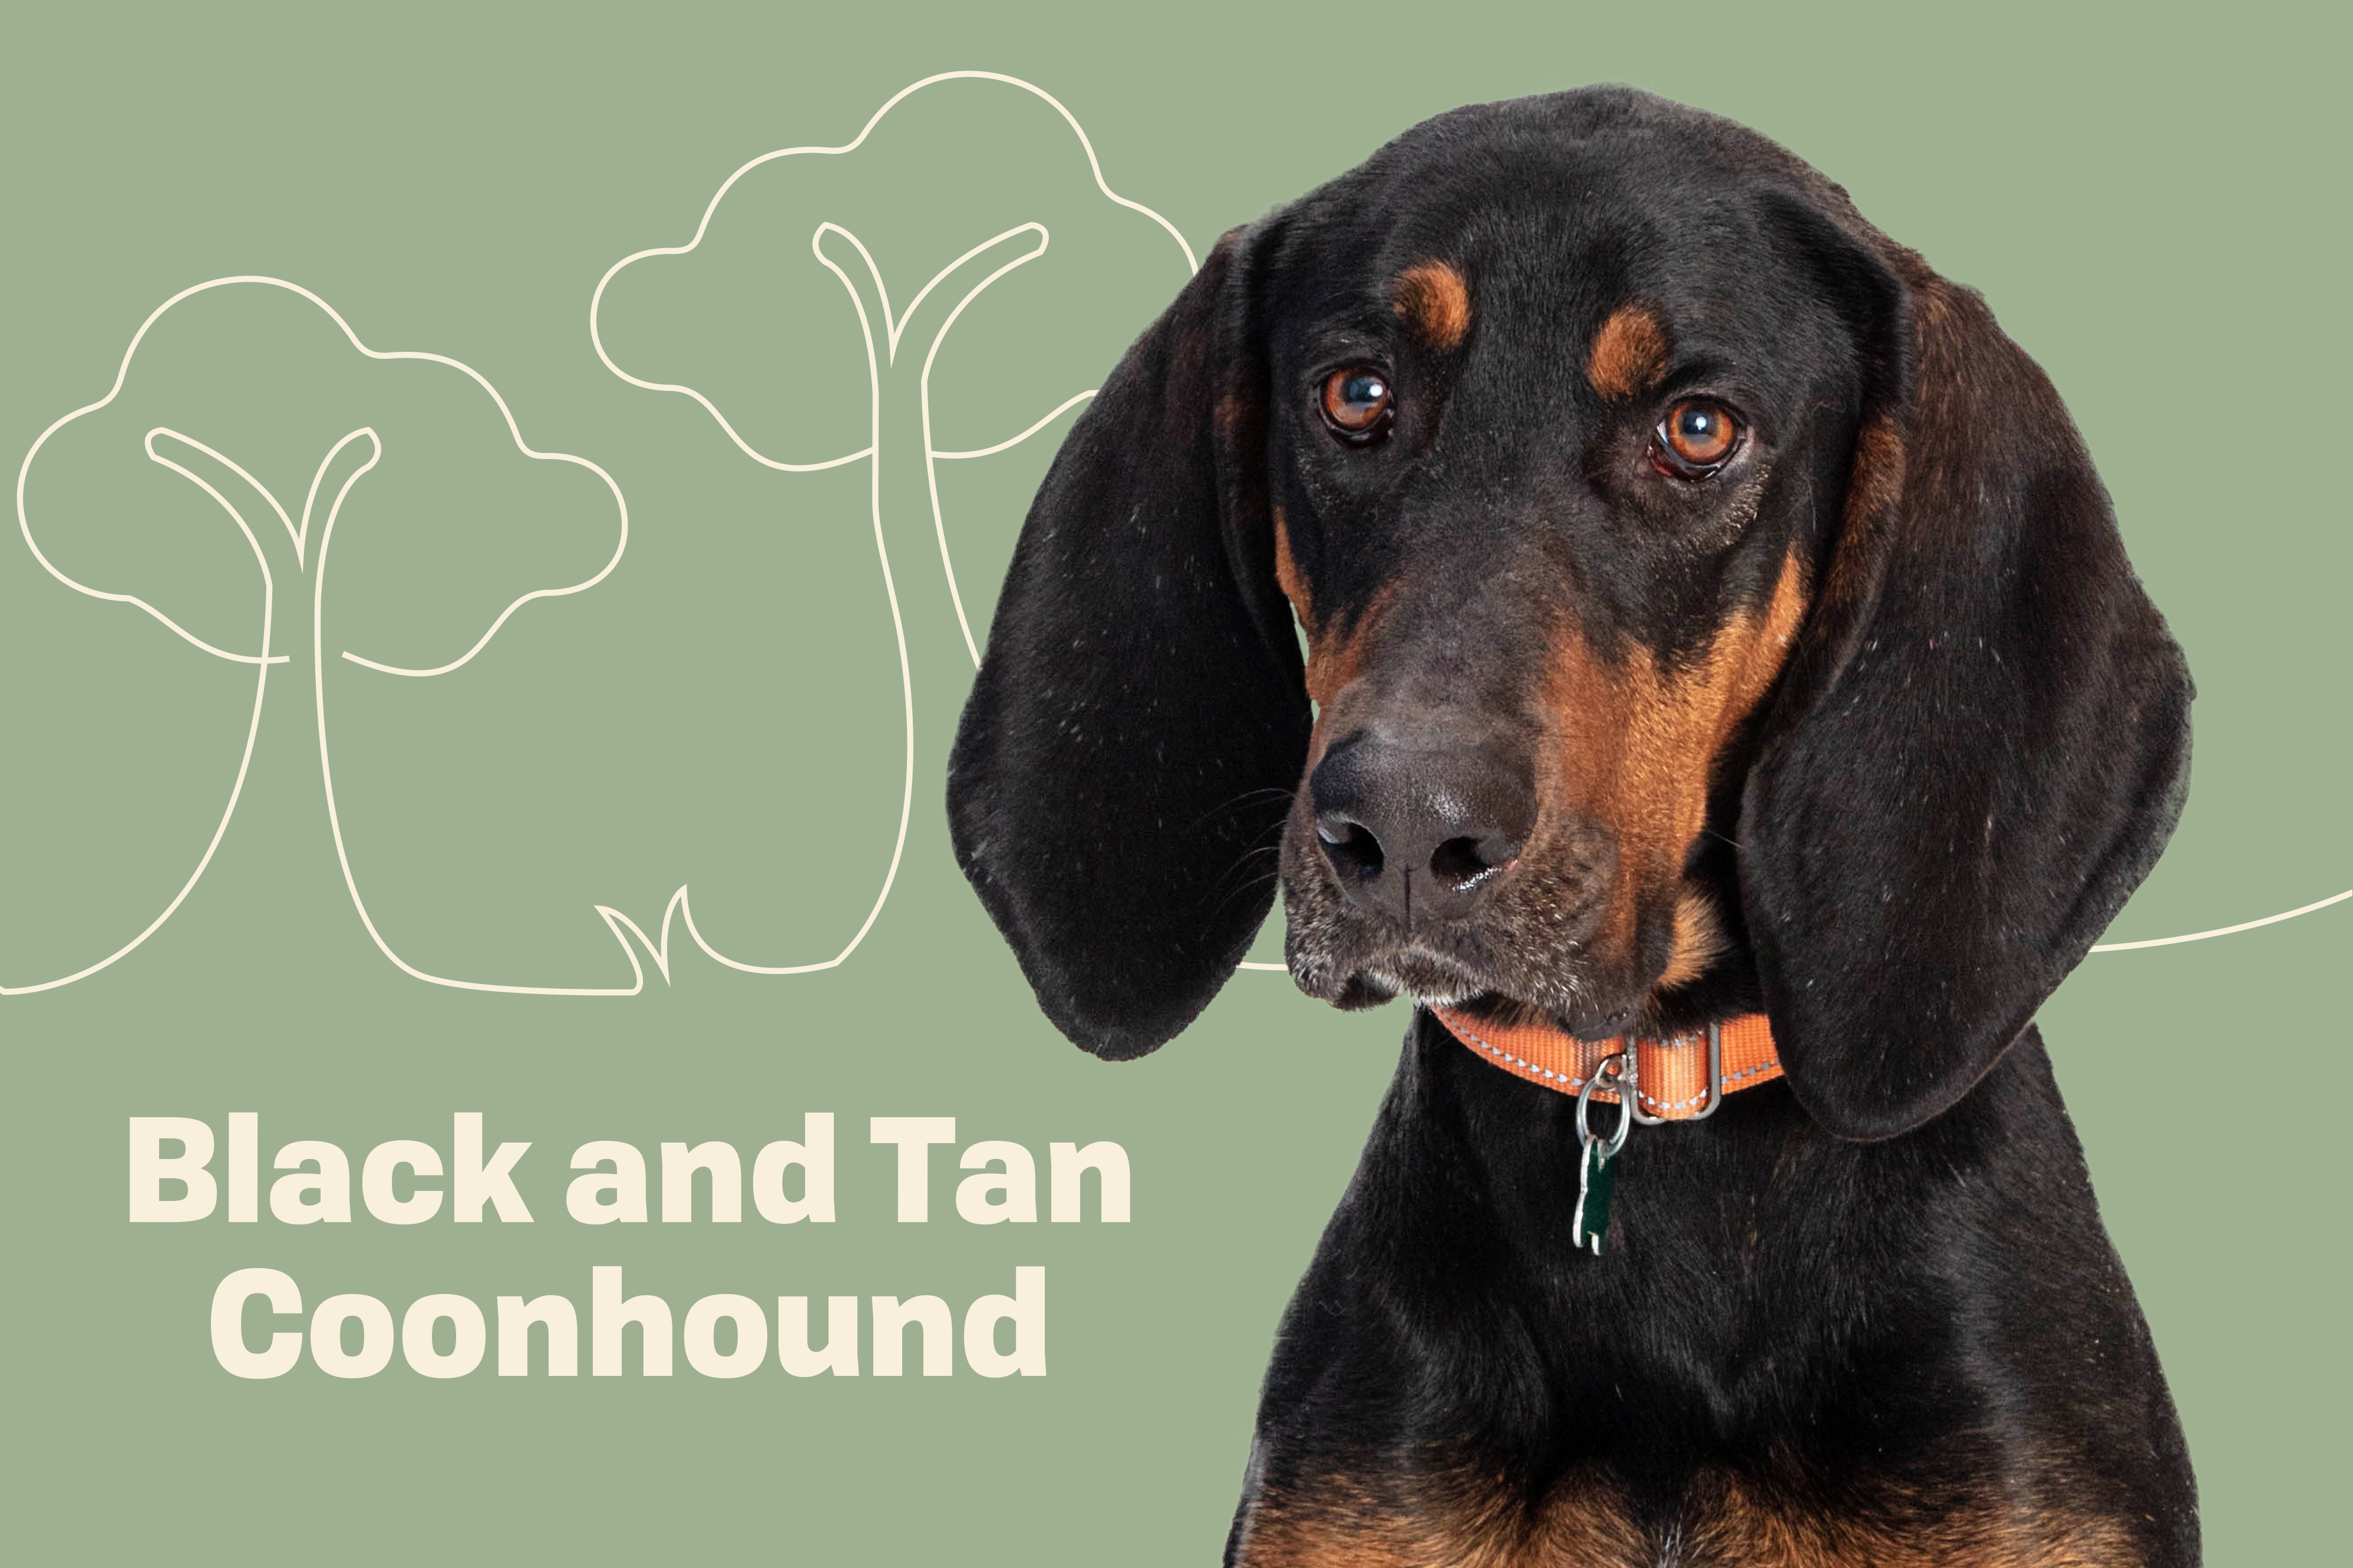 black and tan coonhound profile treatment